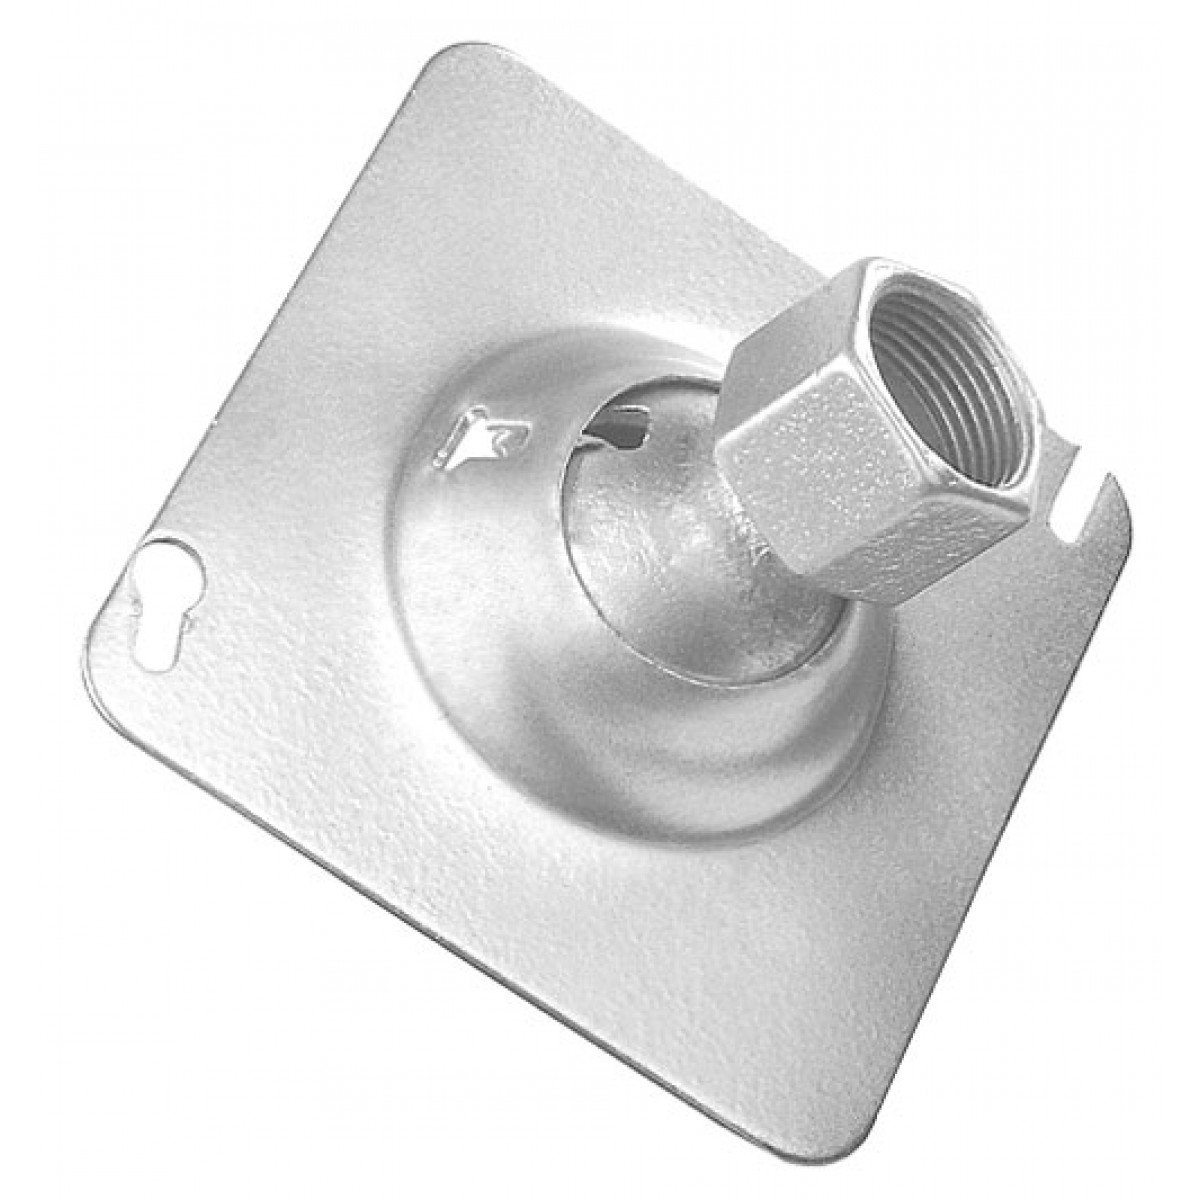 2 Pcs, 4 In. Zinc Plated Steel Square Swivel Fixture Hanger Cover for 3/4 In. Pipe to Hang Light Fixtures, Security Cameras, Speakers & Electrical/Electronic Devices